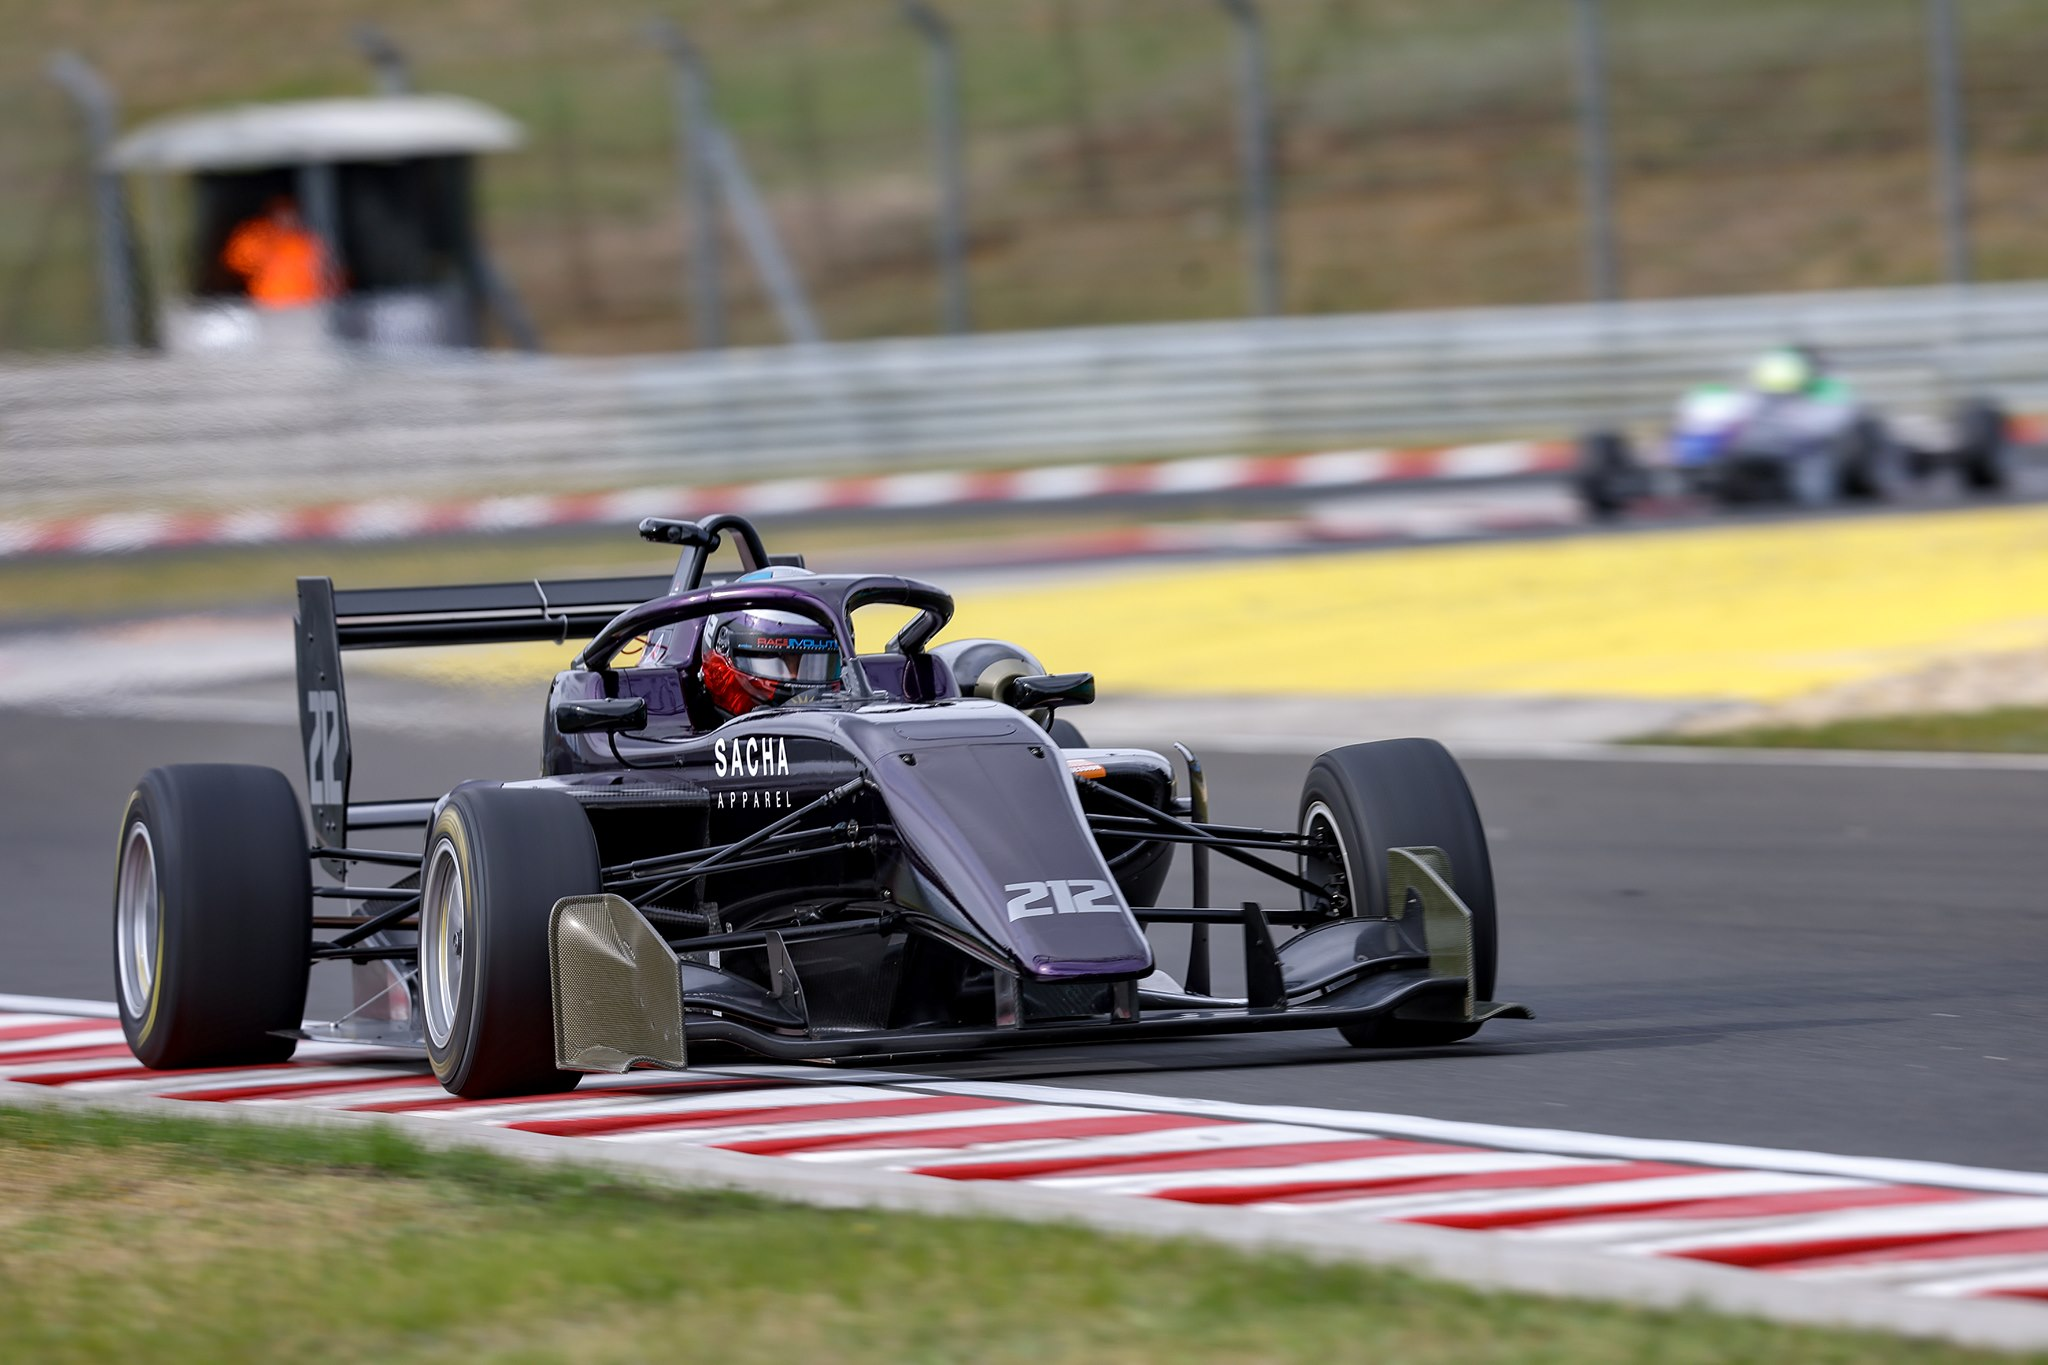 Brajnik dominated both Formula races at Hungaroring